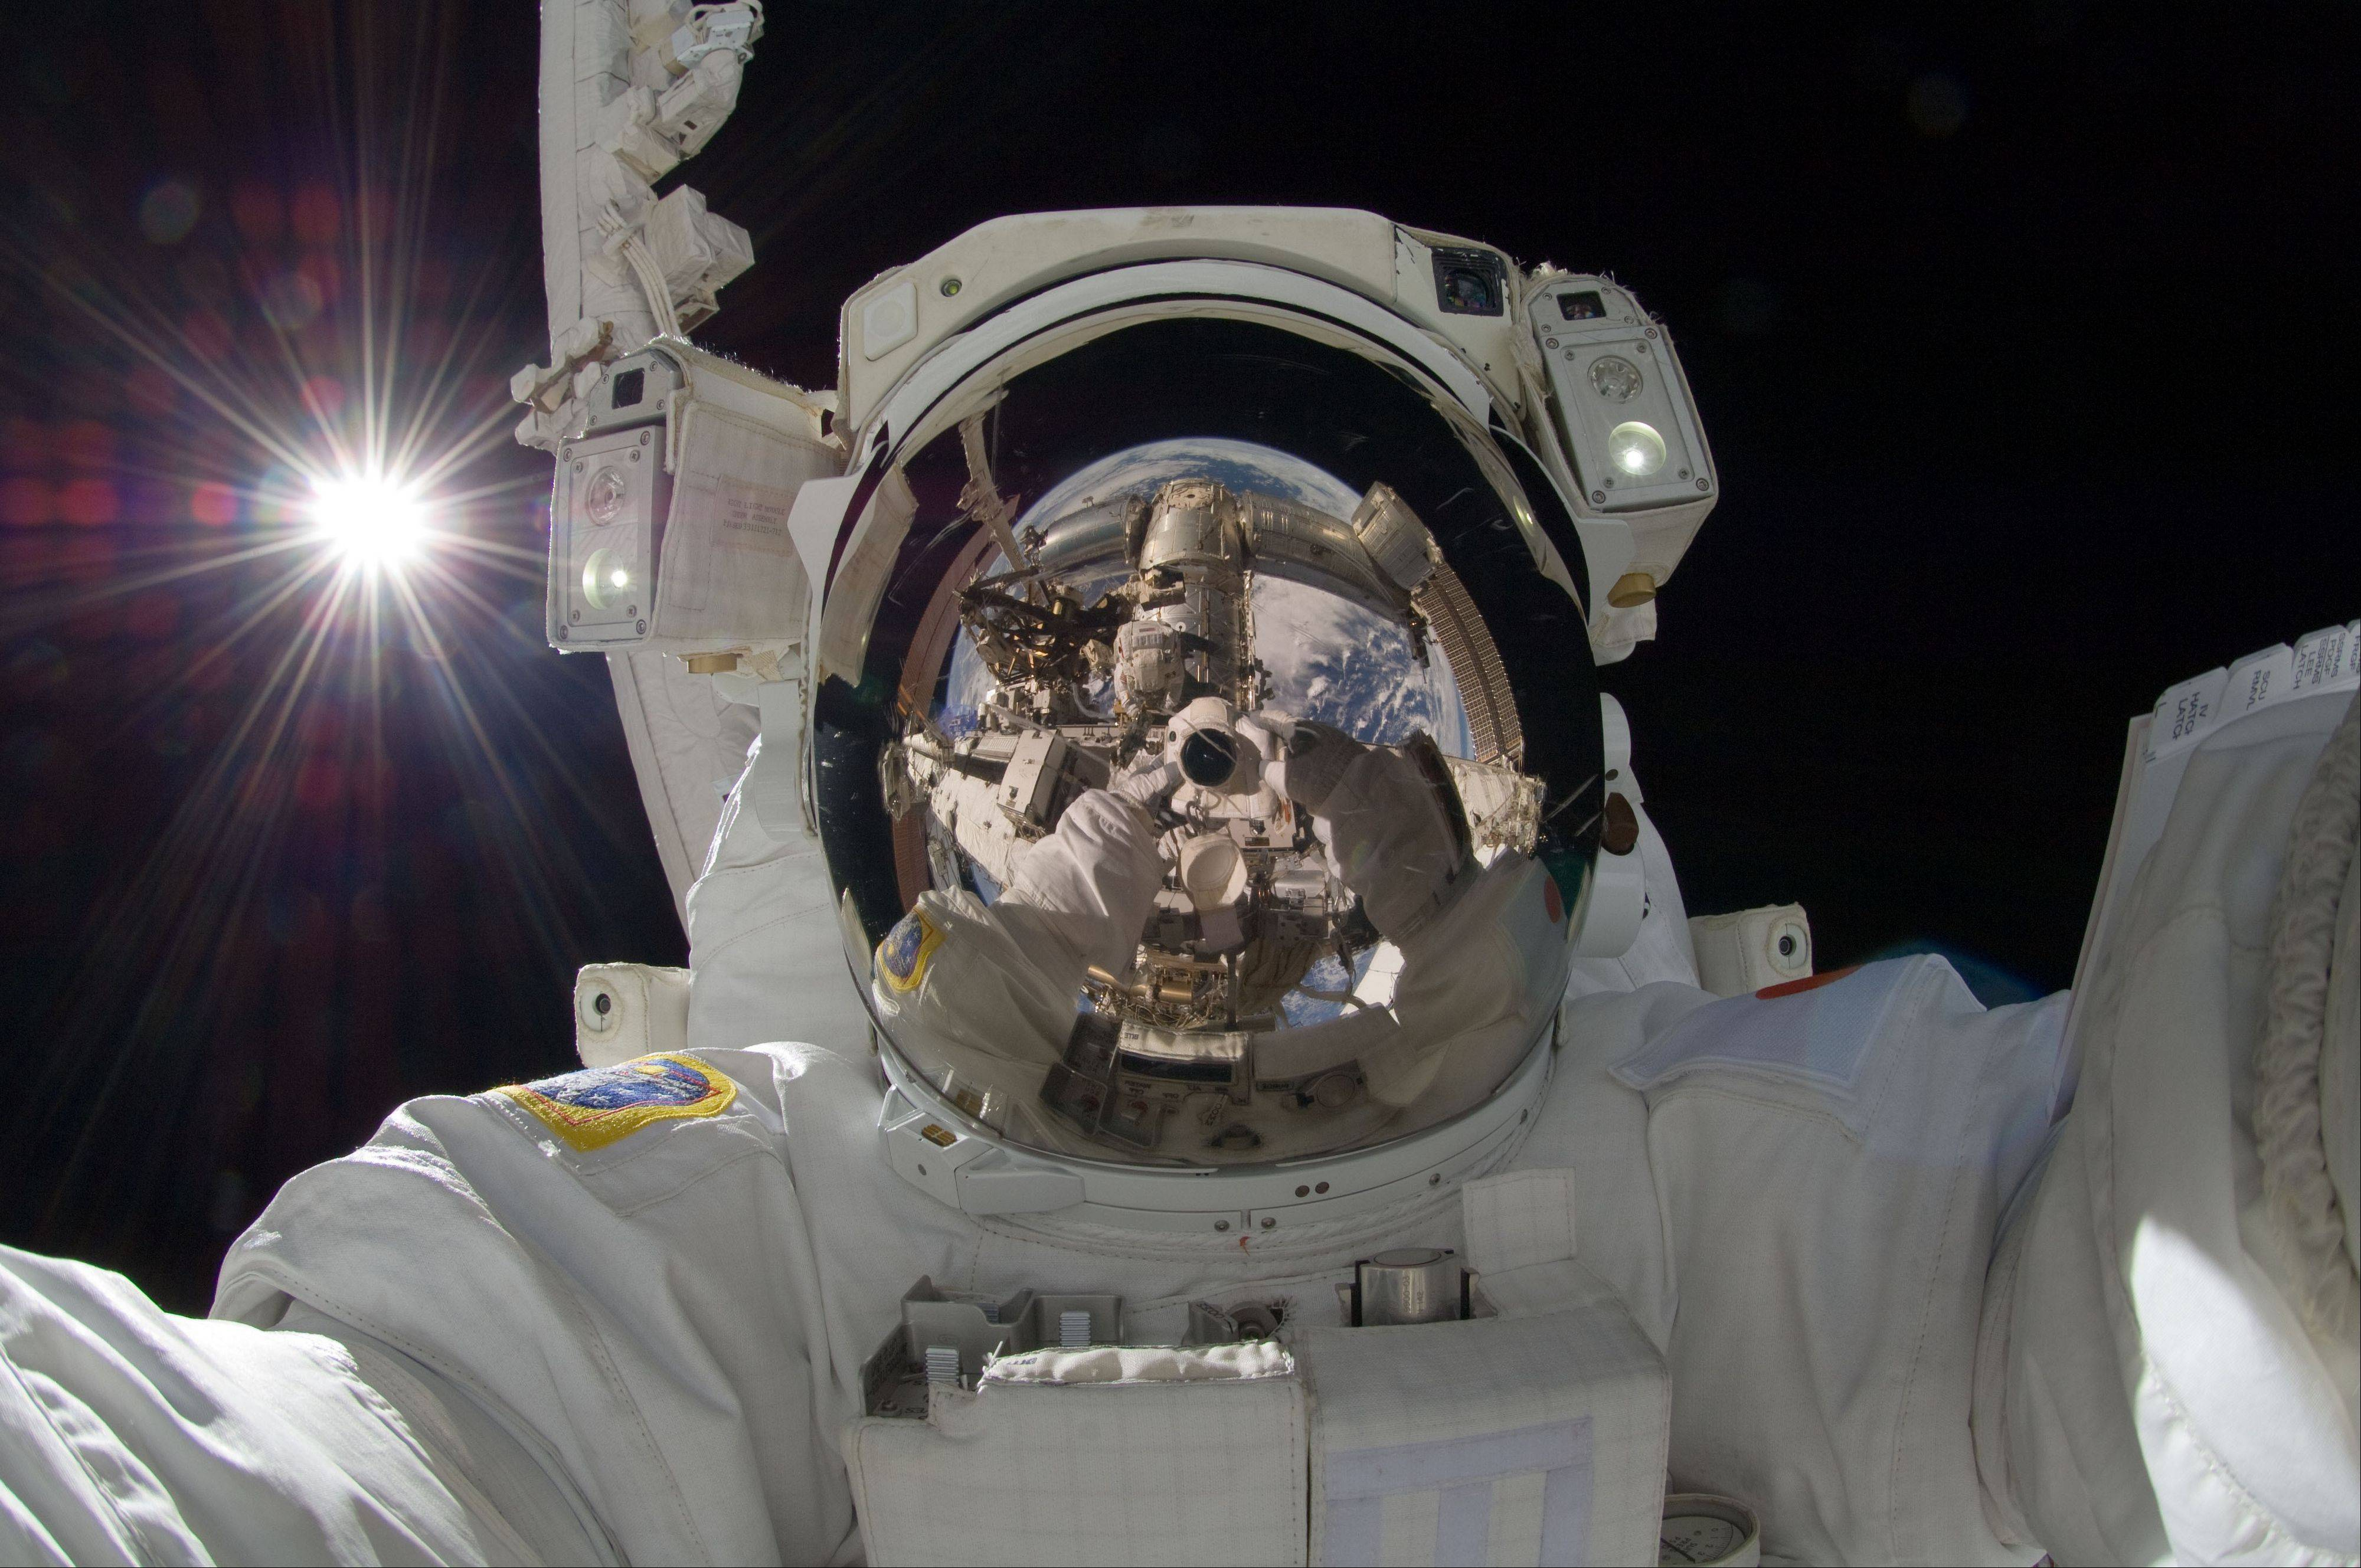 Japan Aerospace Exploration Agency astronaut Aki Hoshide, Expedition 32 flight engineer, uses a digital still camera to expose a photo of his helmet visor during the mission's third session of extravehicular activity (EVA).